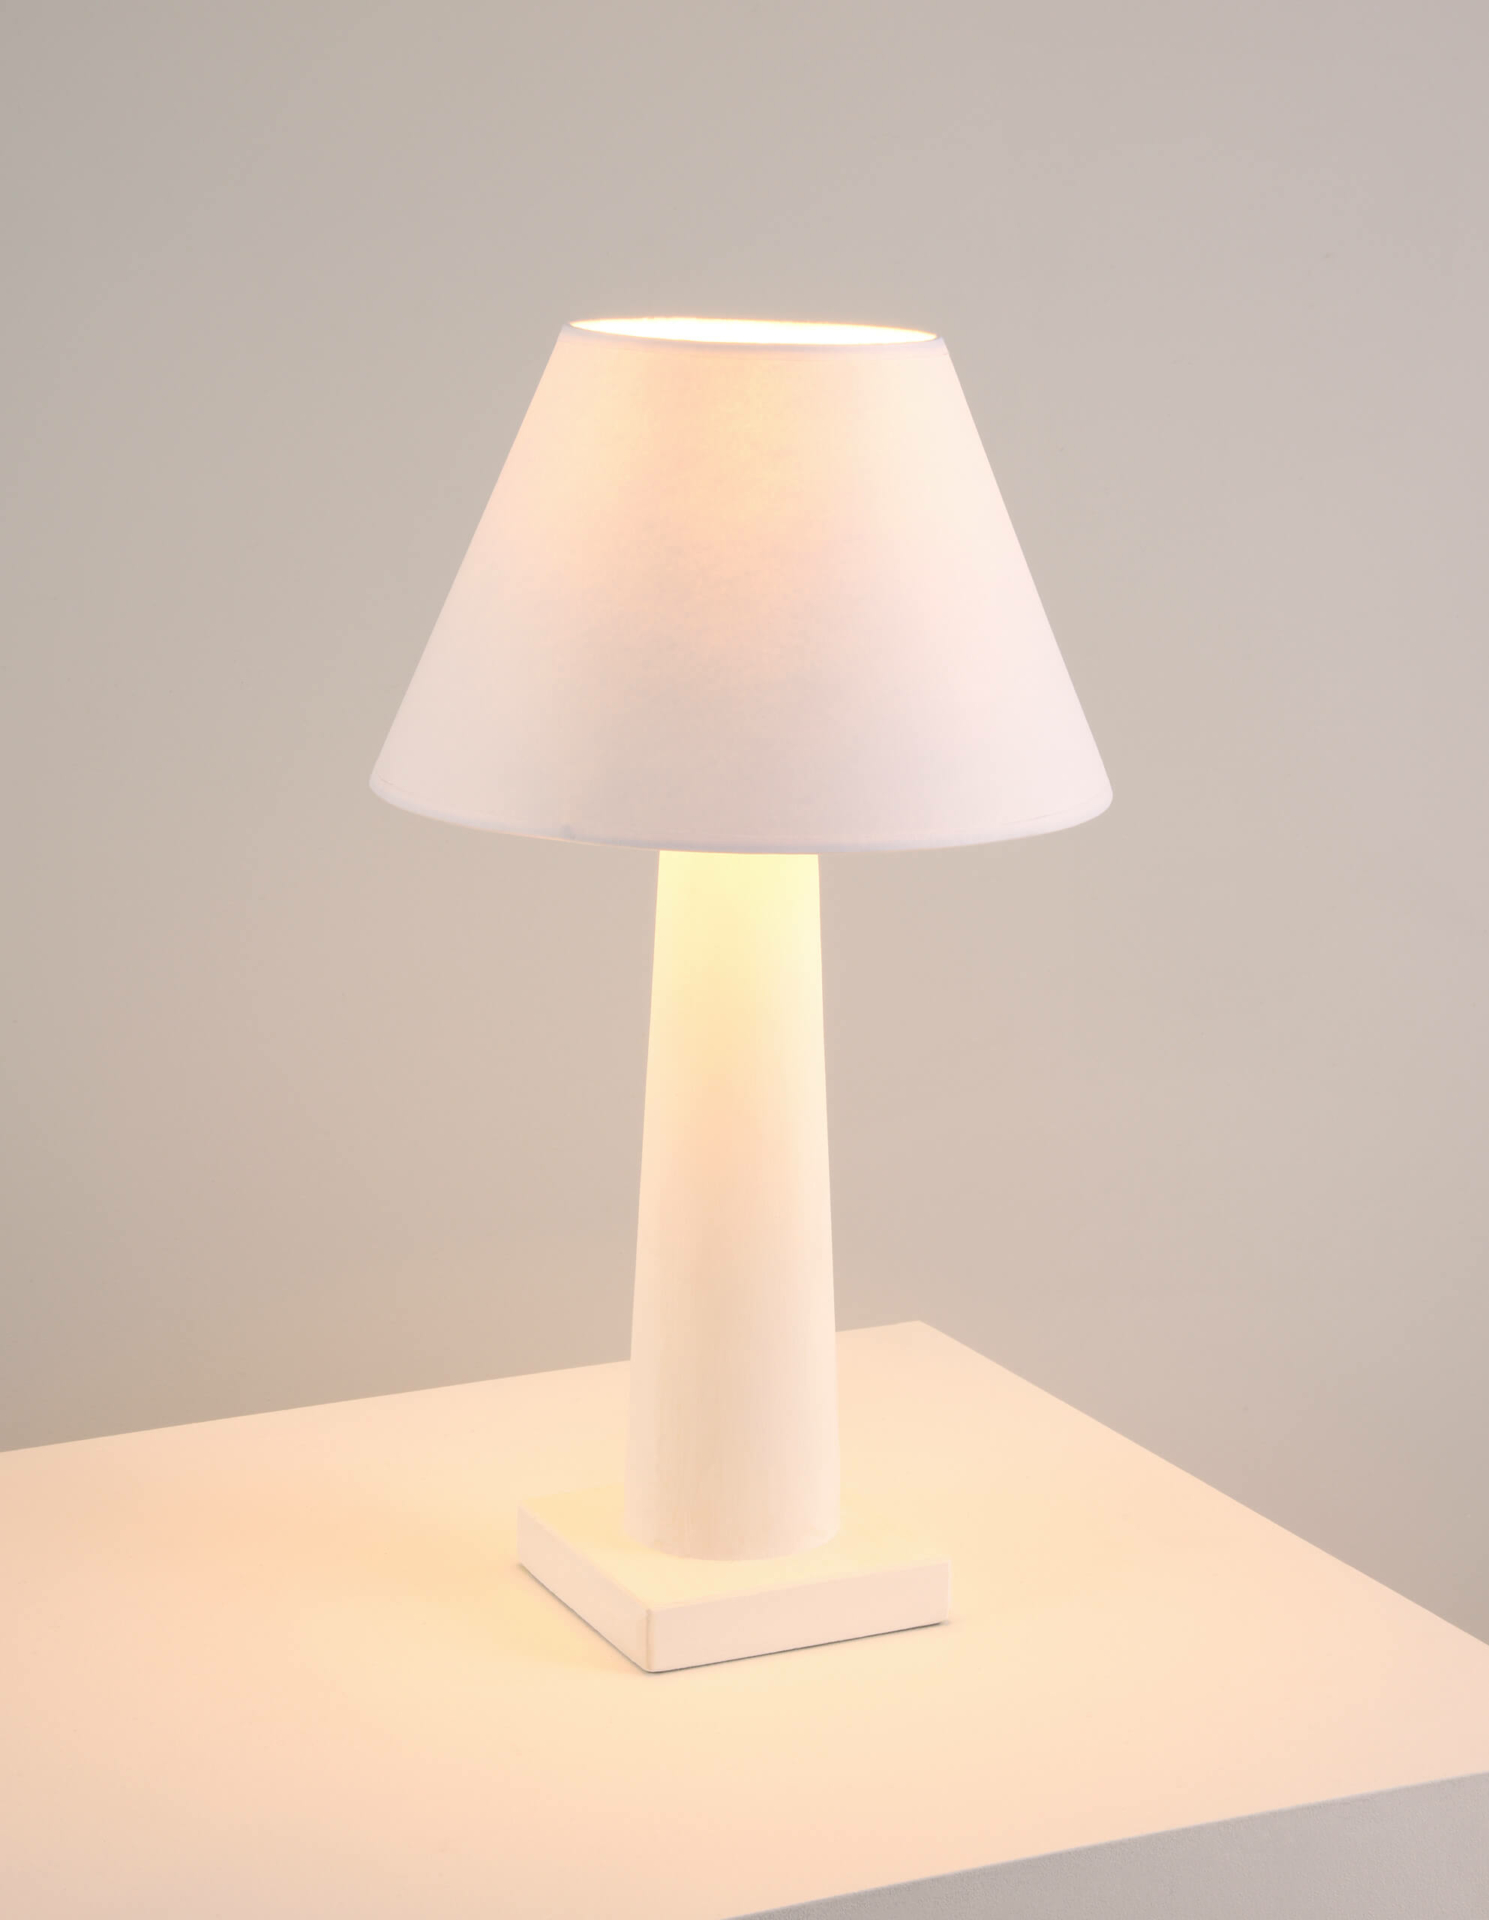 Frank Small - a plaster table lamp in white by Collier Webb